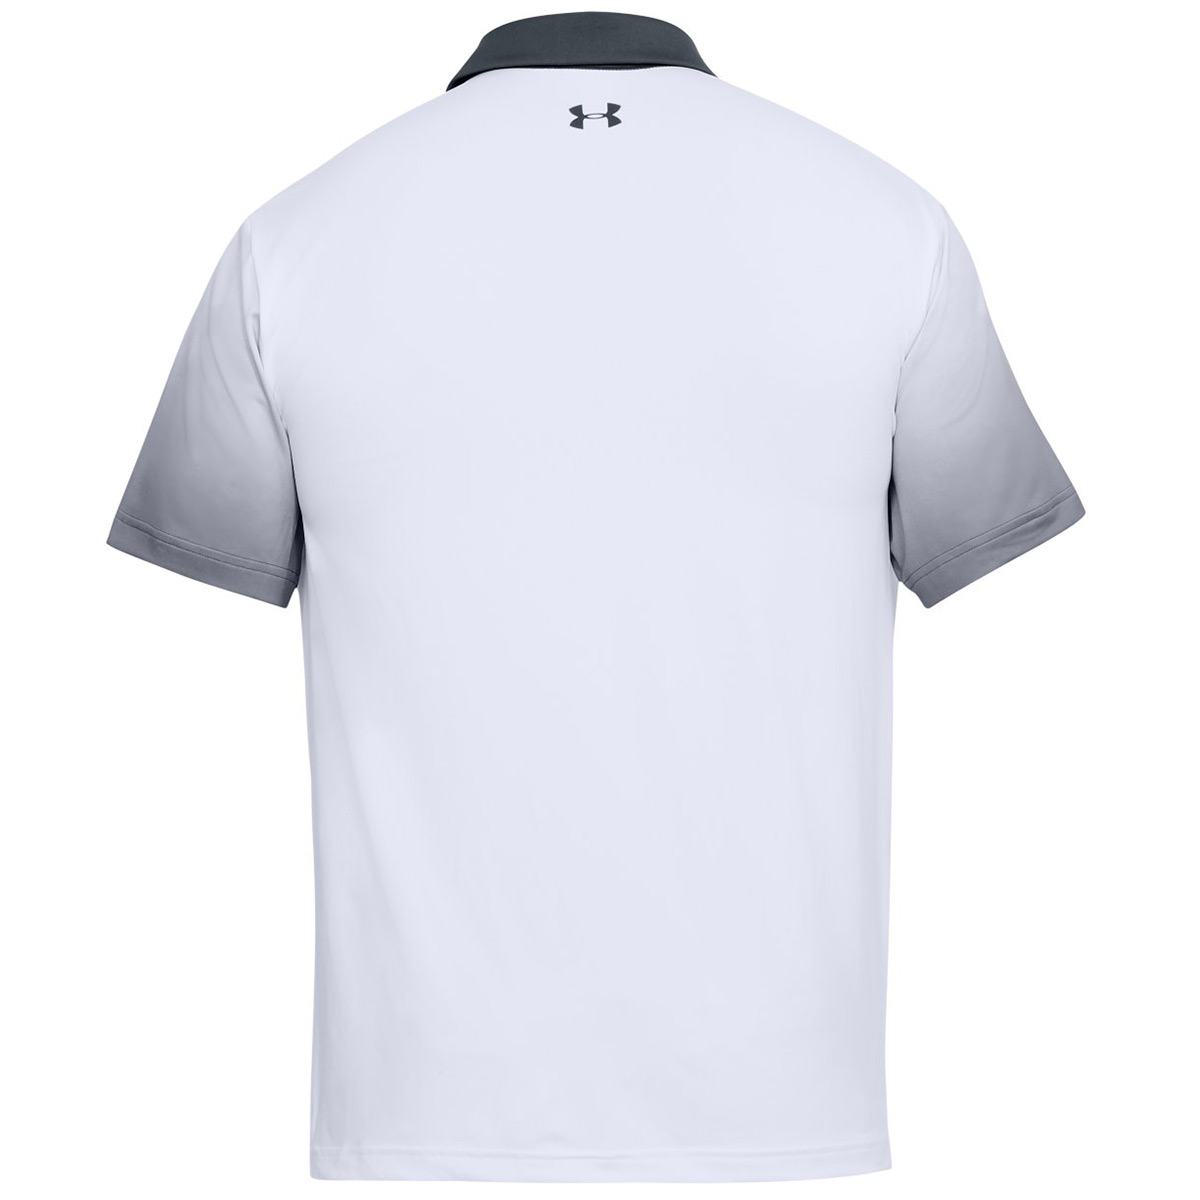 Under-Armour-Mens-UA-Playoff-Performance-Golf-Polo-Shirt-42-OFF-RRP thumbnail 52